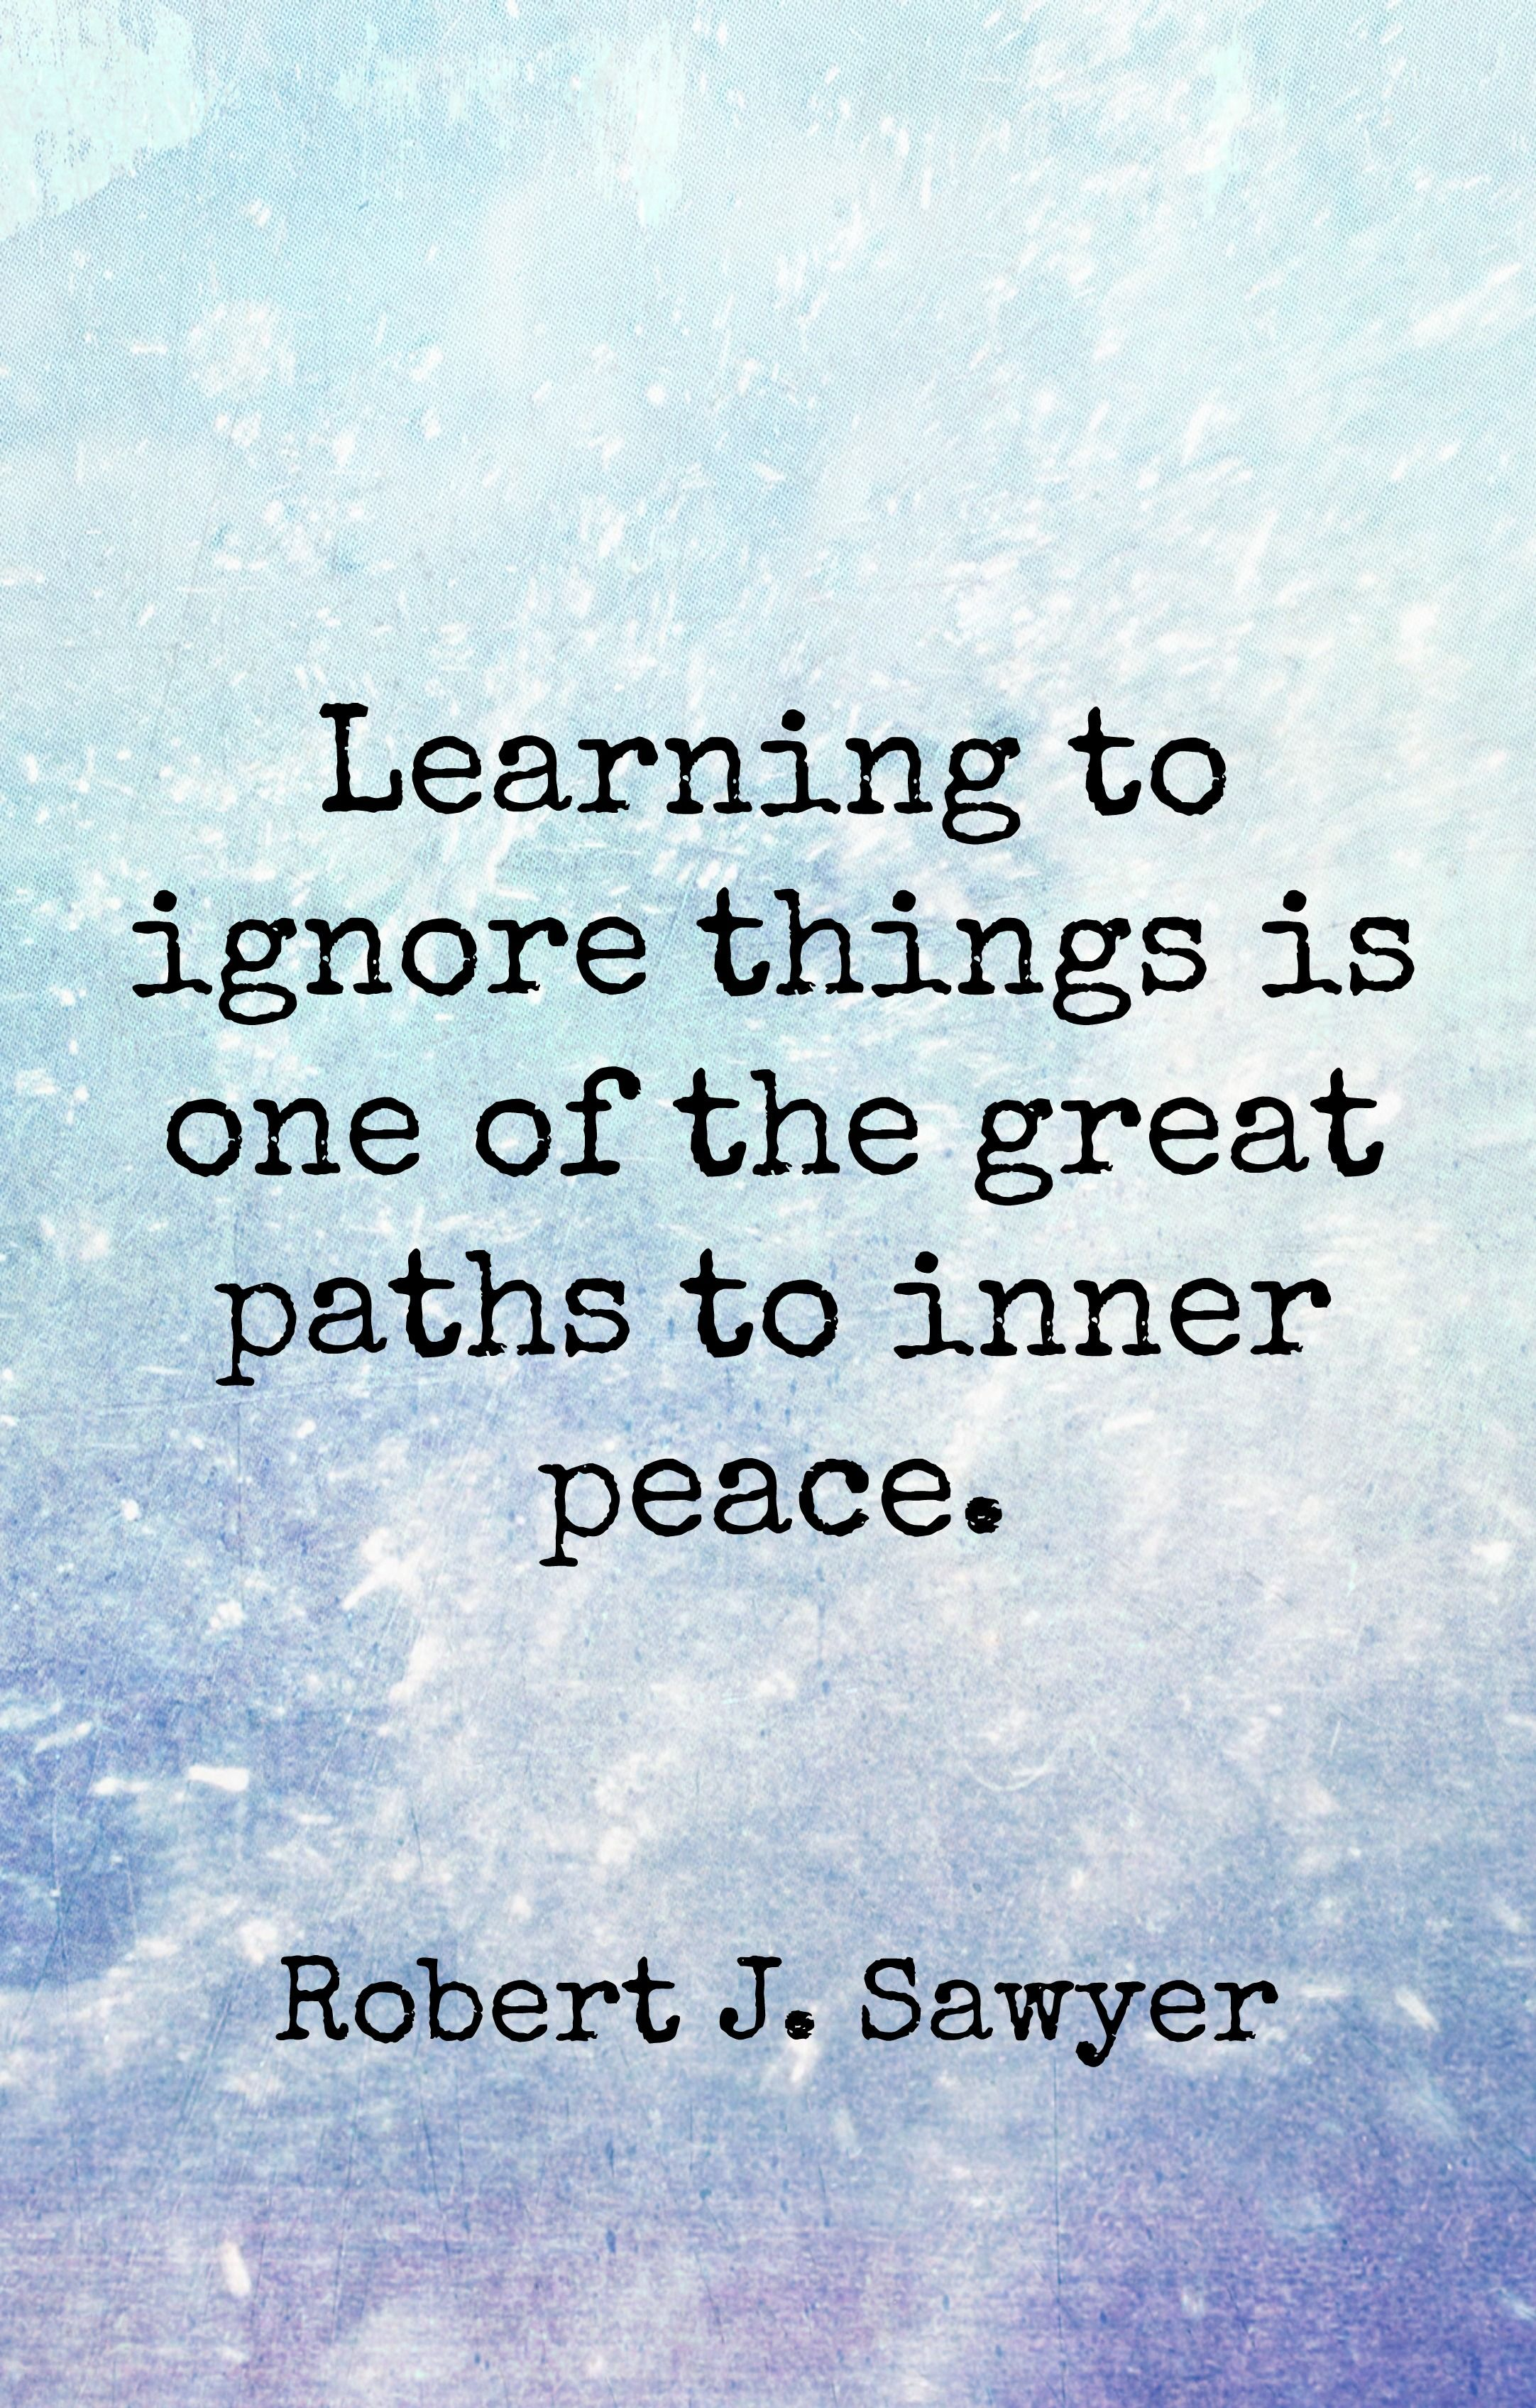 Quote About Peace And Love Learning To Ignore Things Is One Of The Great Paths To Inner Peace